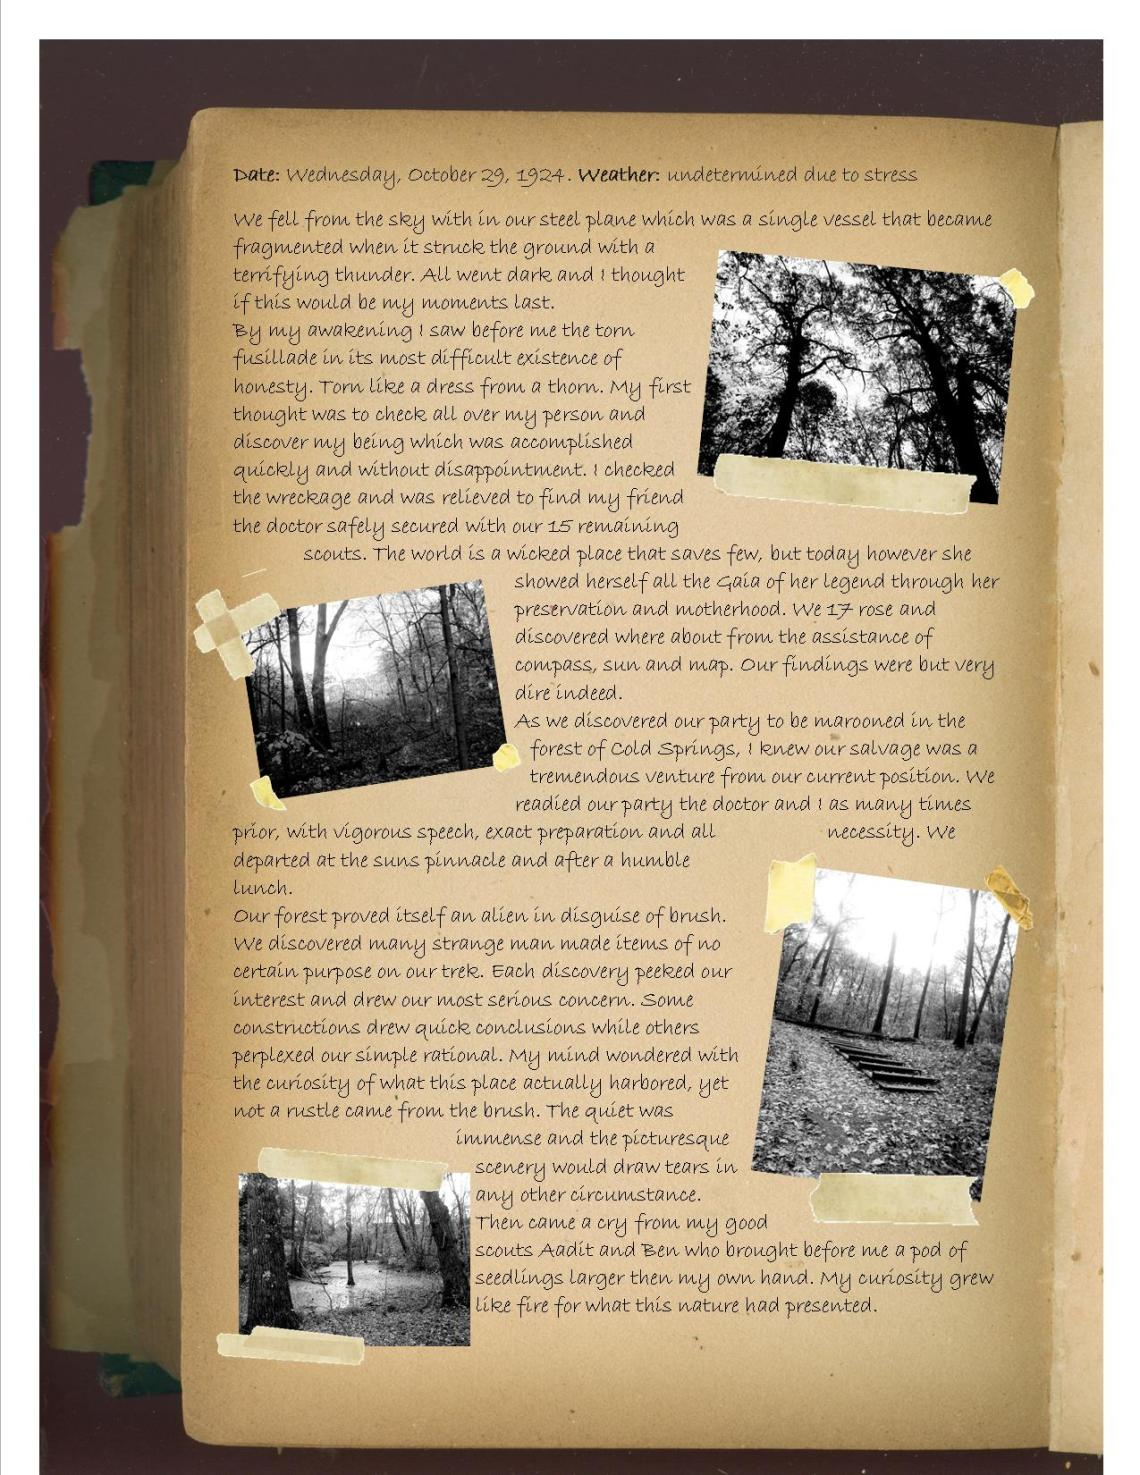 Cold springs journal entry pg 1